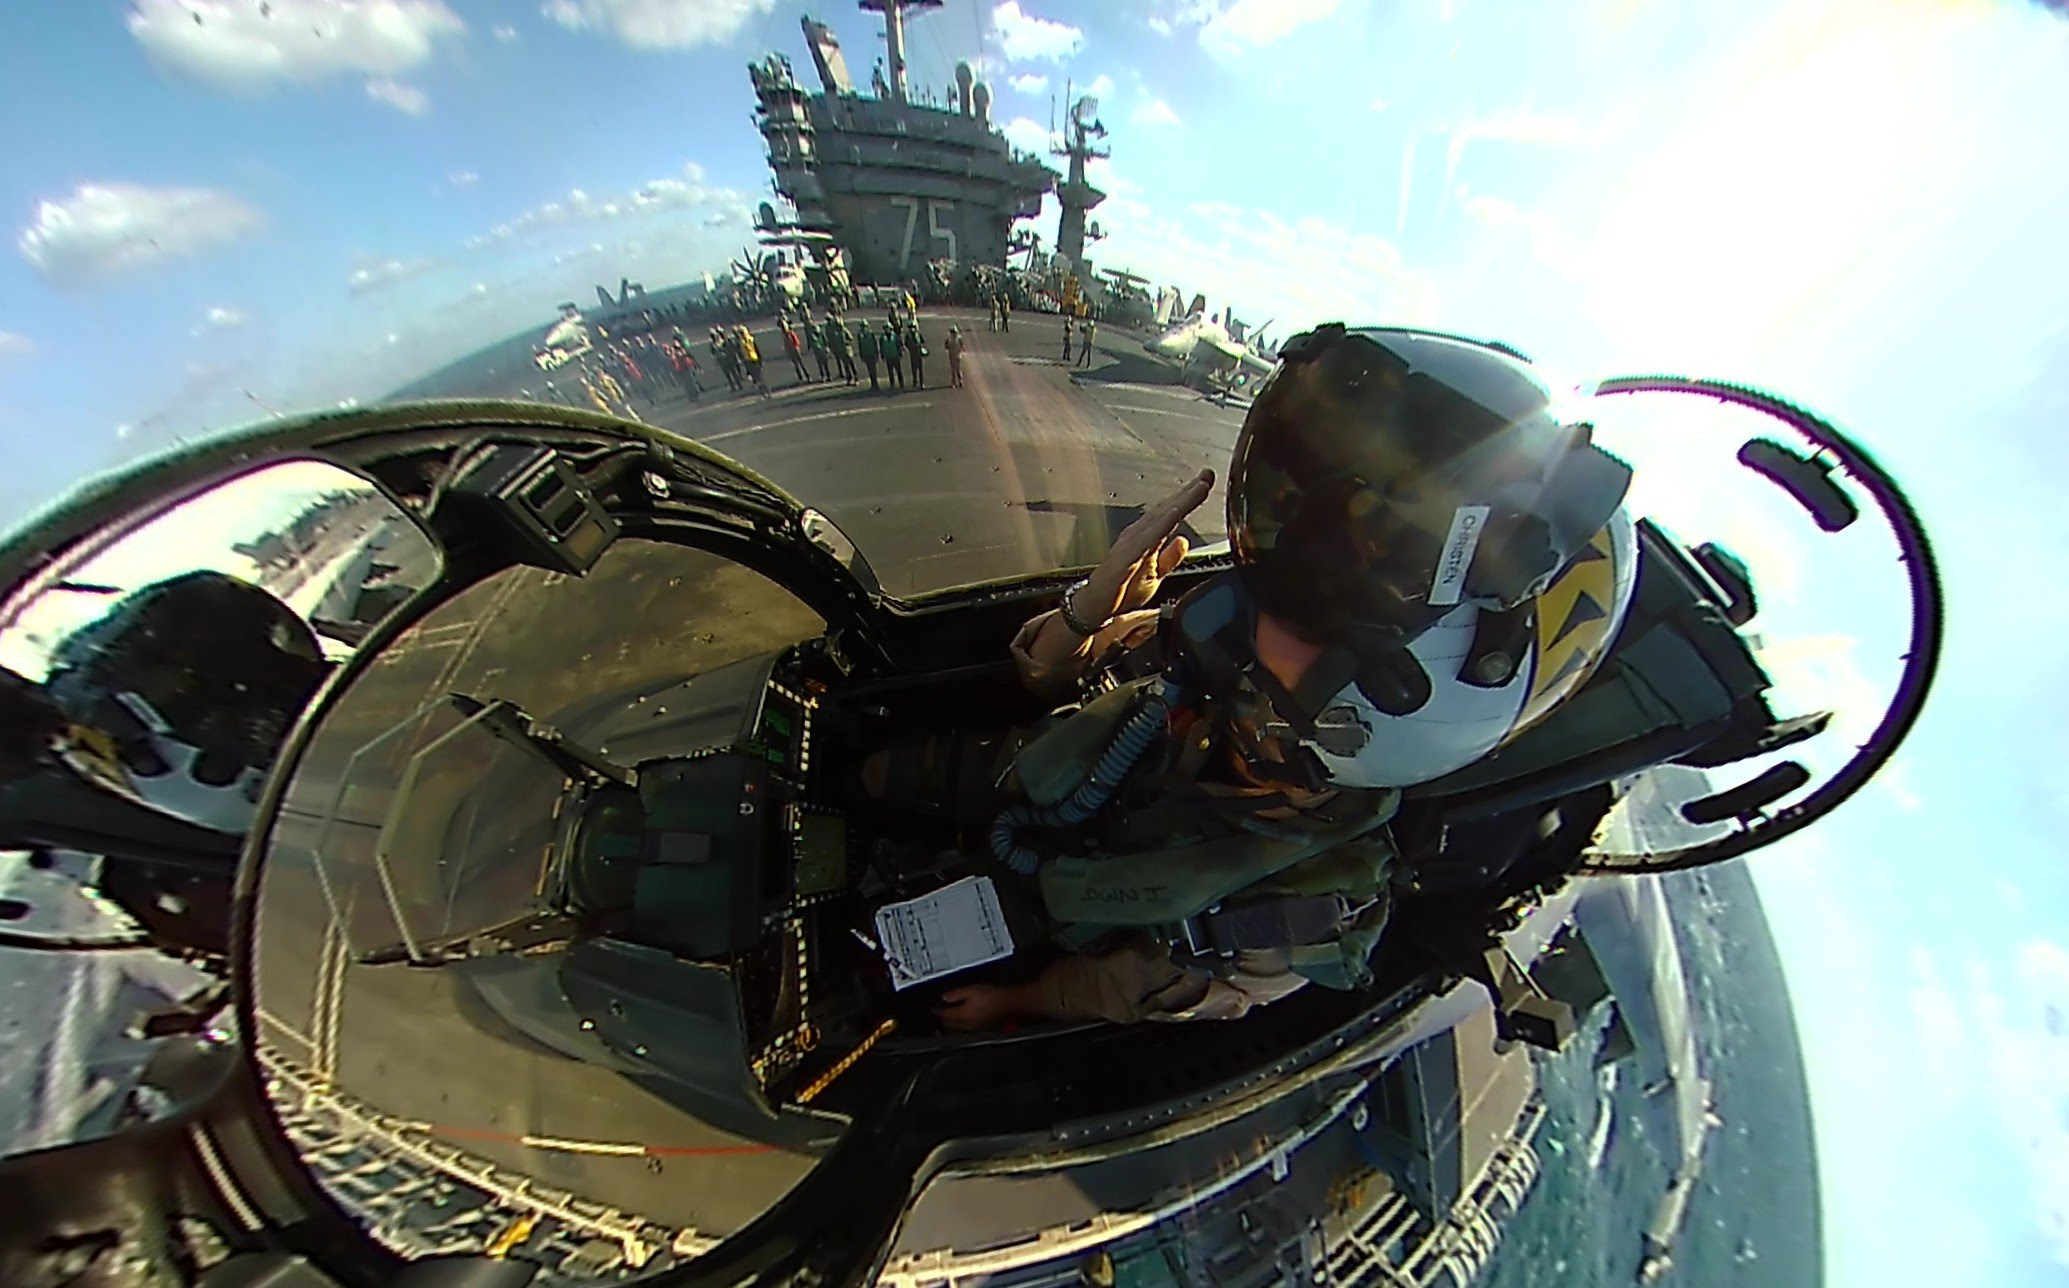 360fly: F/A-18 Super Hornet launch from the USS Harry S. Truman